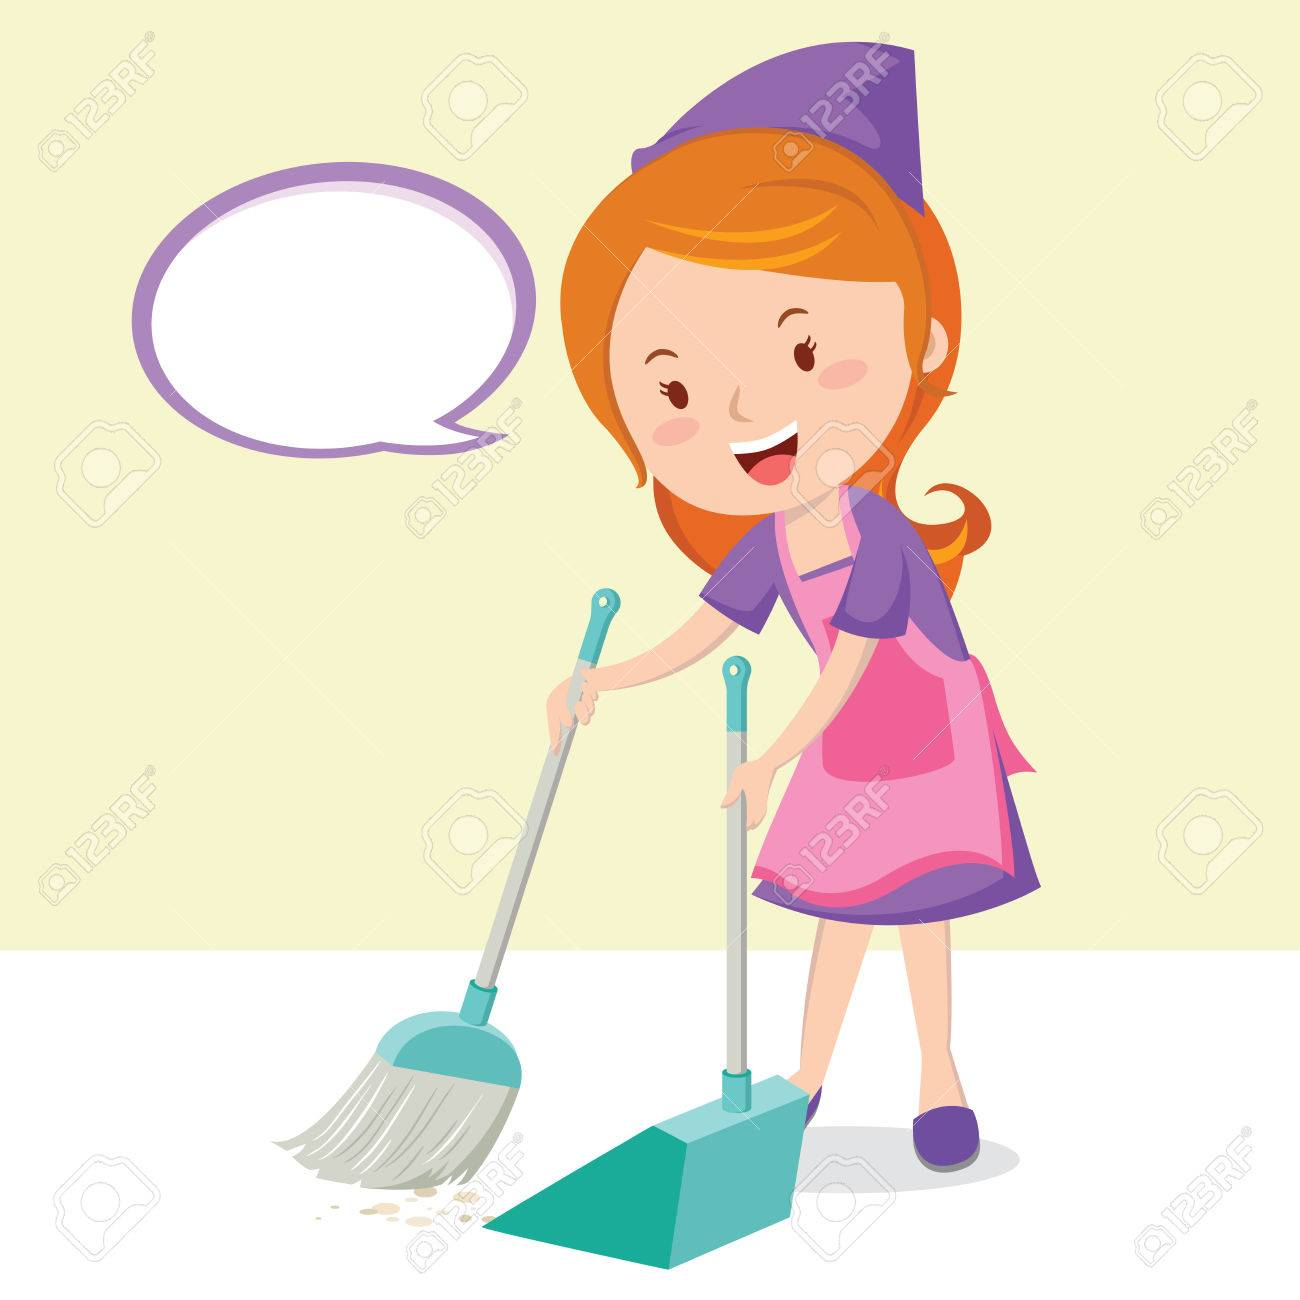 young girl sweeping floor with broom royalty free cliparts vectors and stock illustration image 72768059 young girl sweeping floor with broom